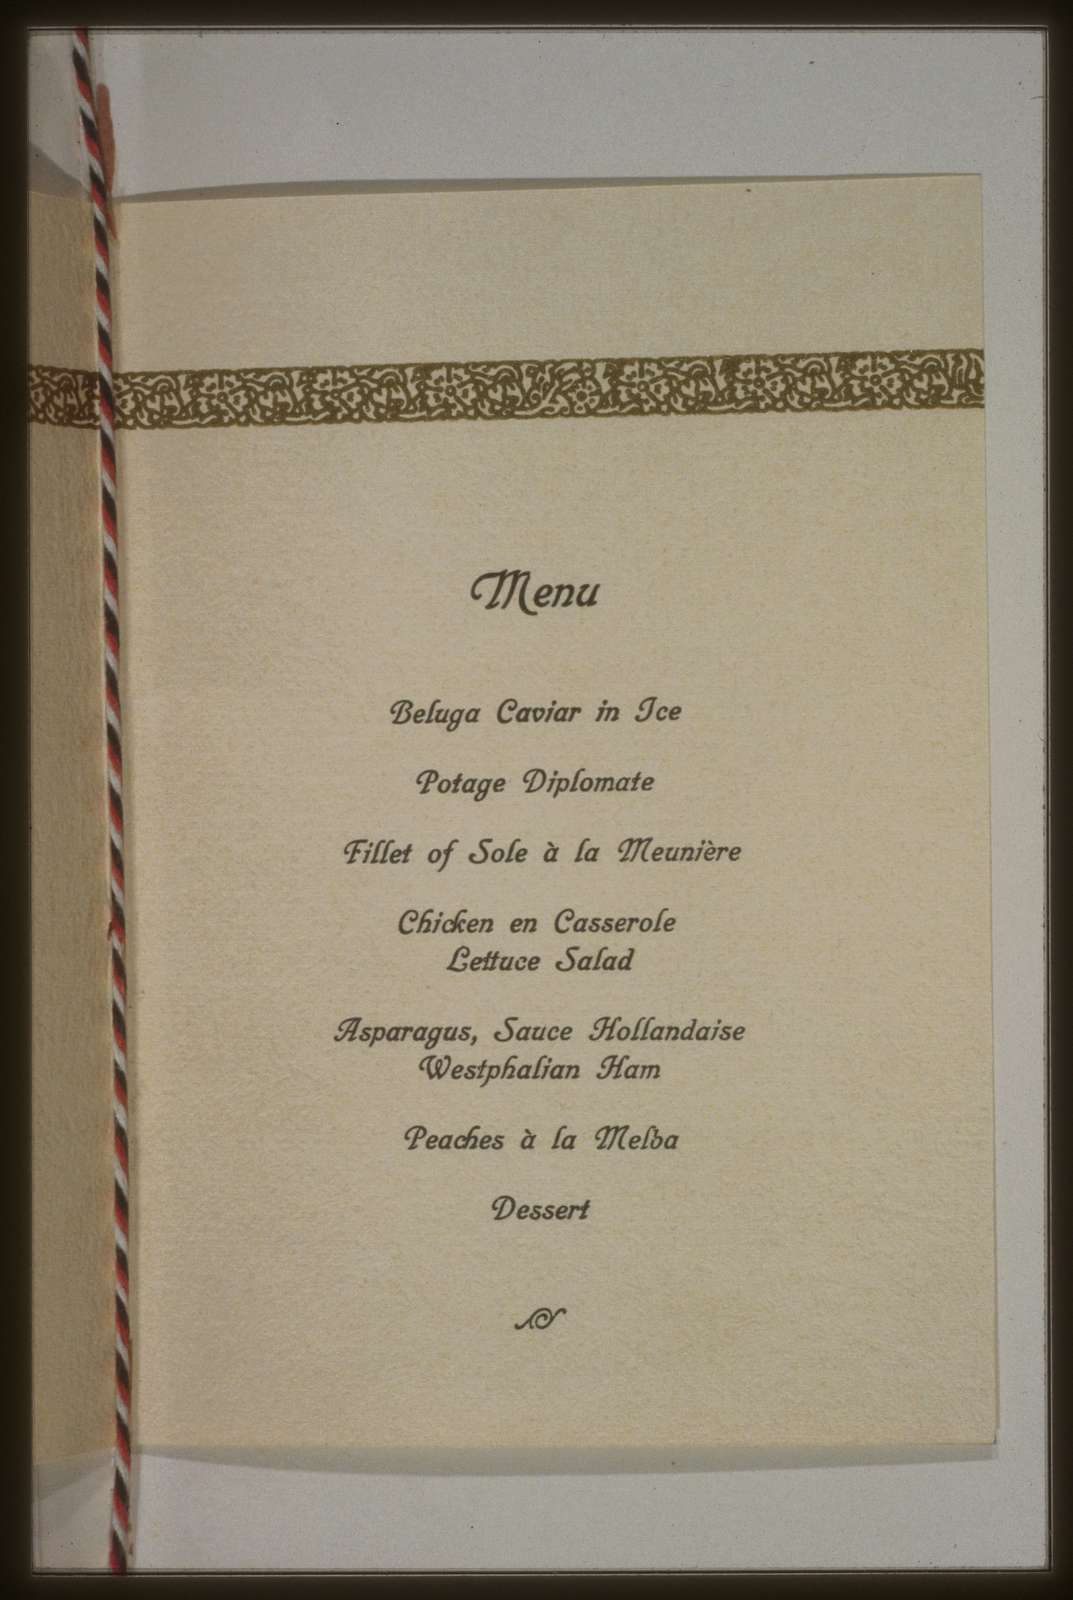 [The  20th anniversary dinner invitation of Mr. and Mrs. Harry Houdini]